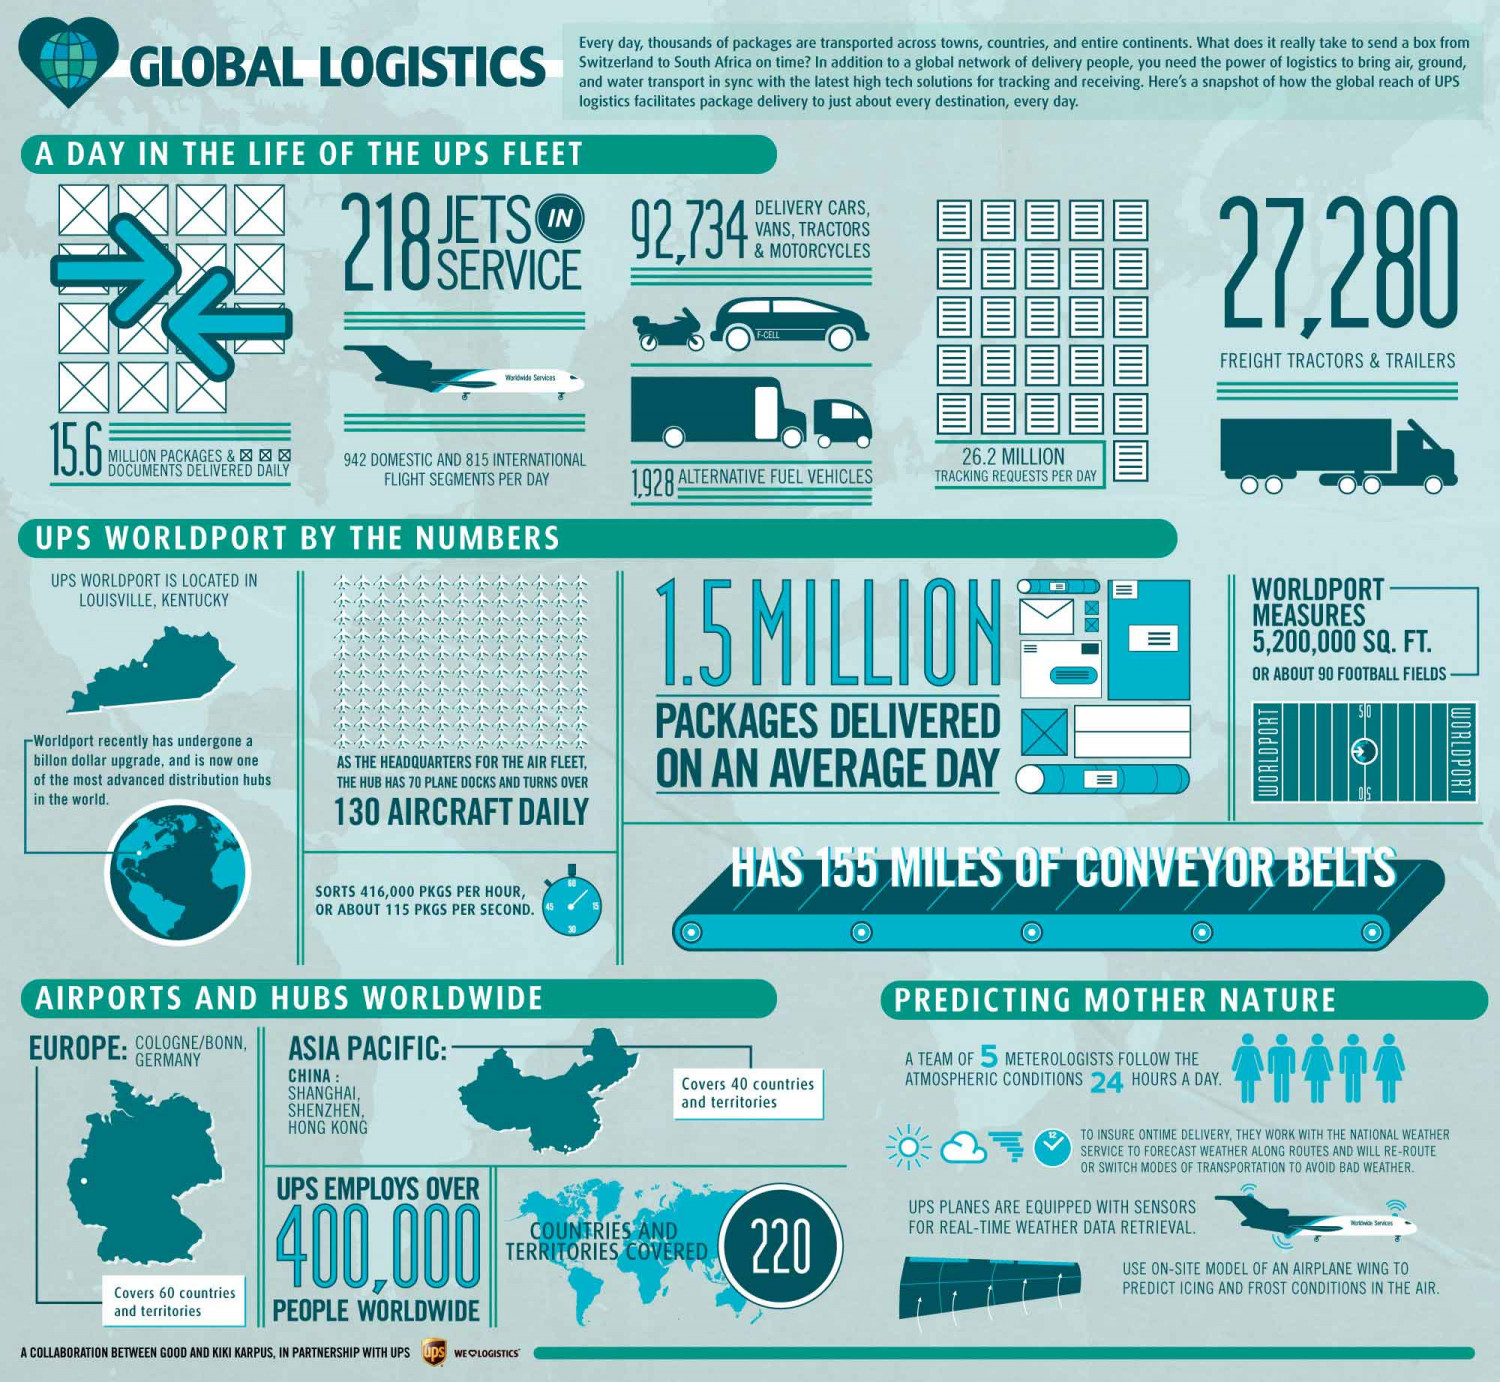 Global Logistics: A Day in the Life of the UPS Fleet Infographic